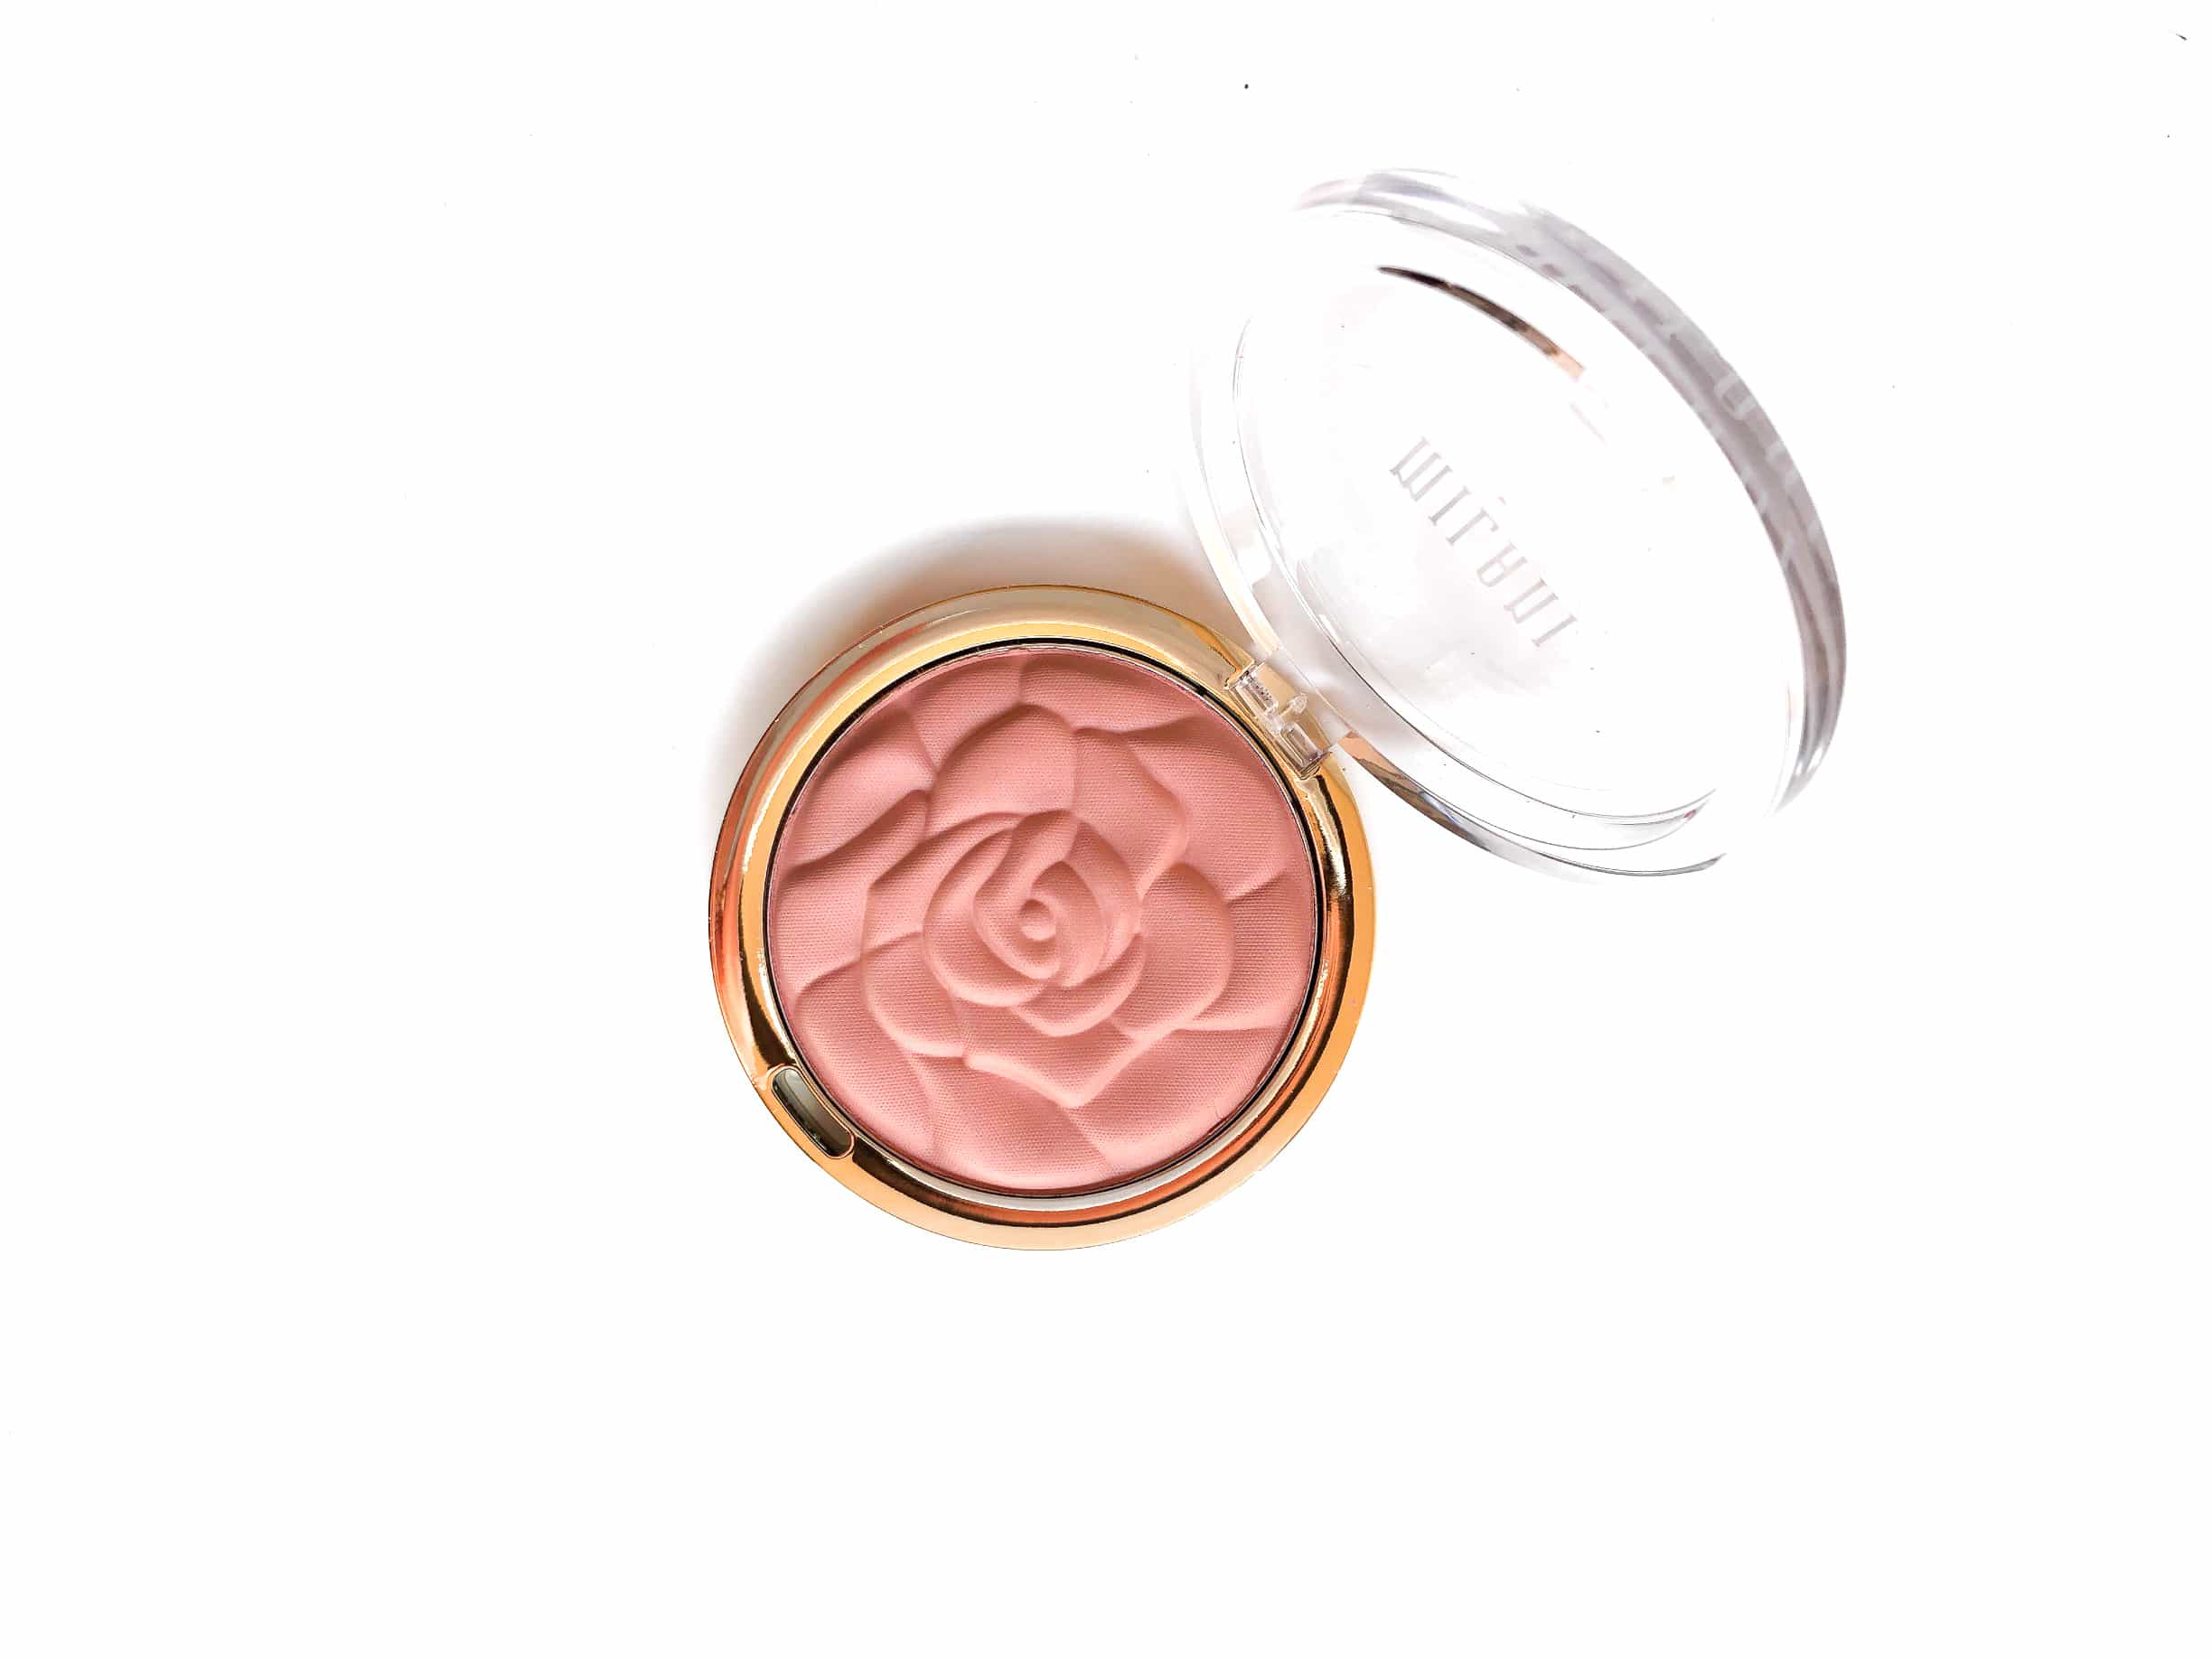 Milani Romantic Rose Rose Powder Blush